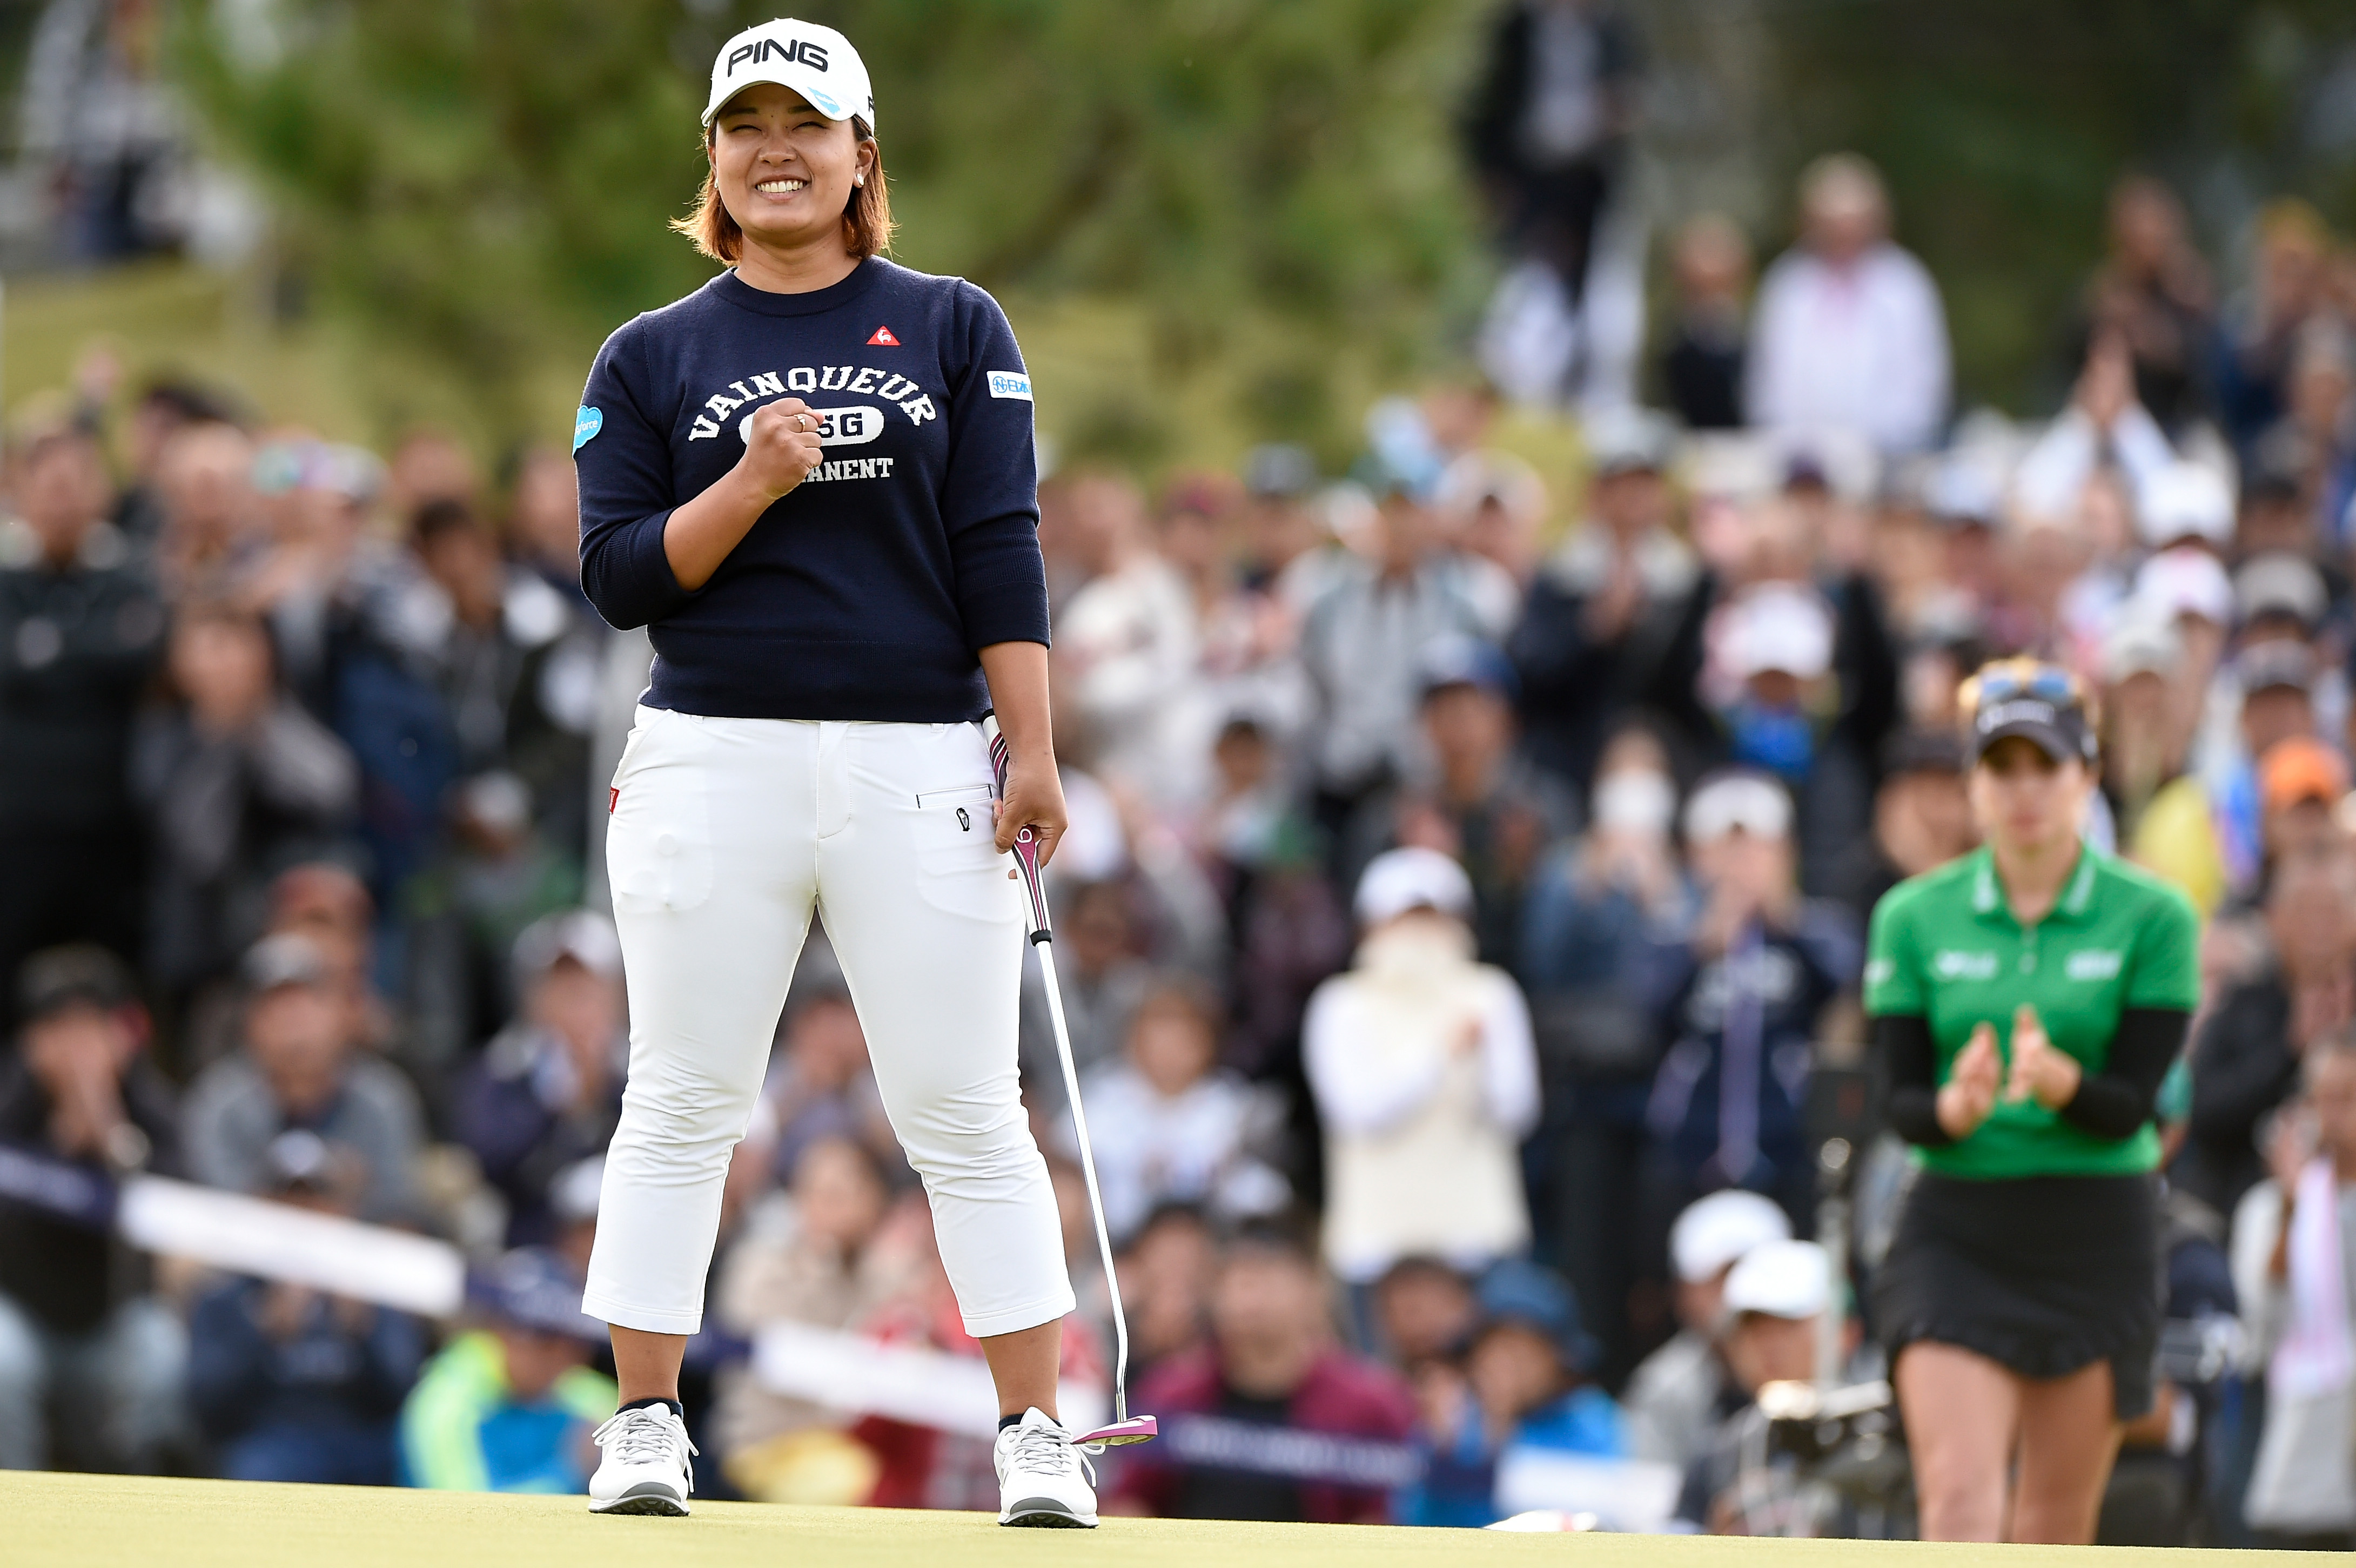 TOTO Japan Classic - Final Round Getty Images